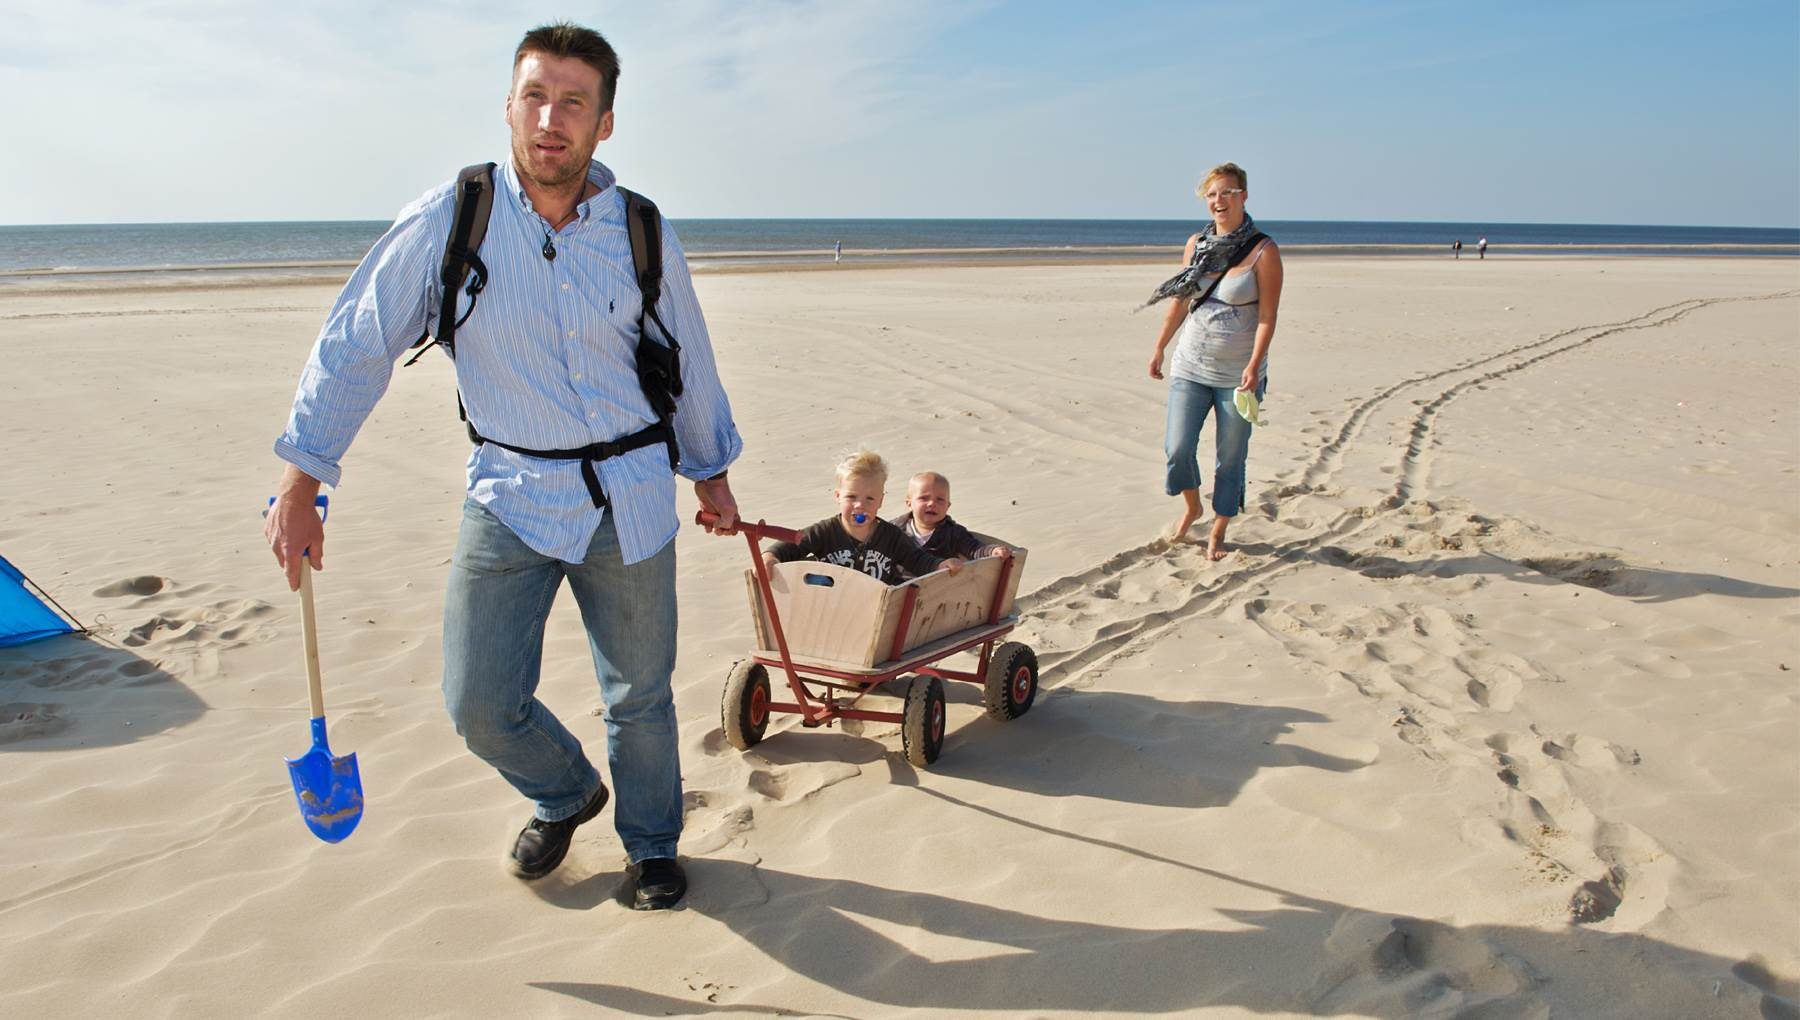 Amsterdam Family on beach Rob Verhagen